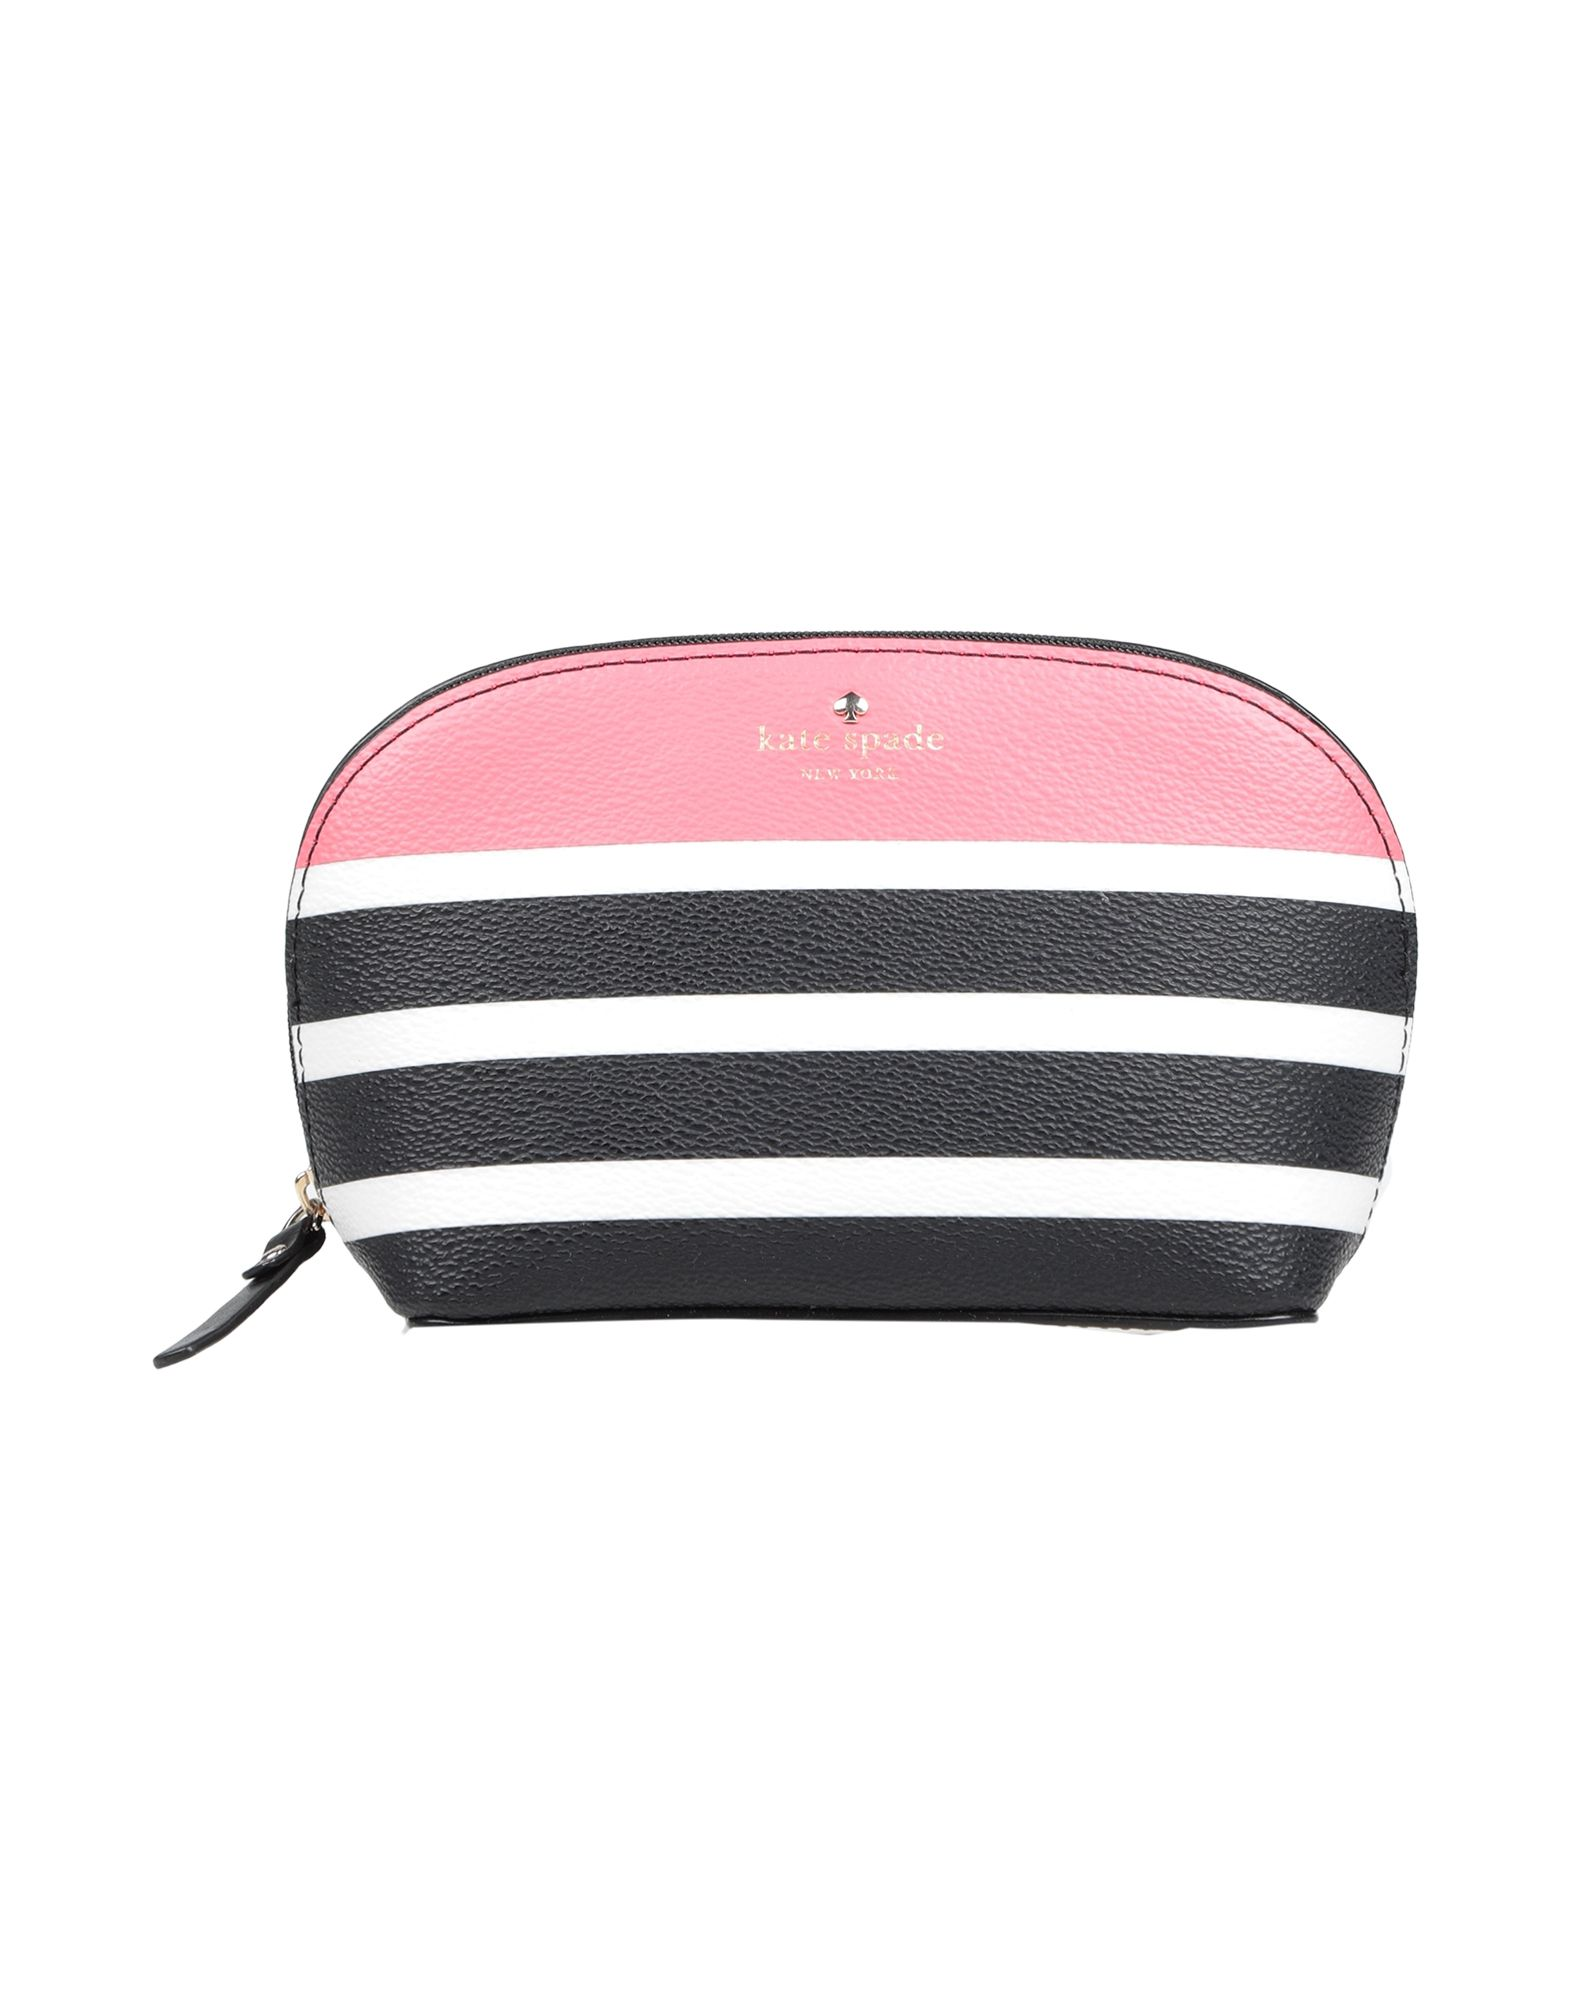 цена KATE SPADE New York Beauty case